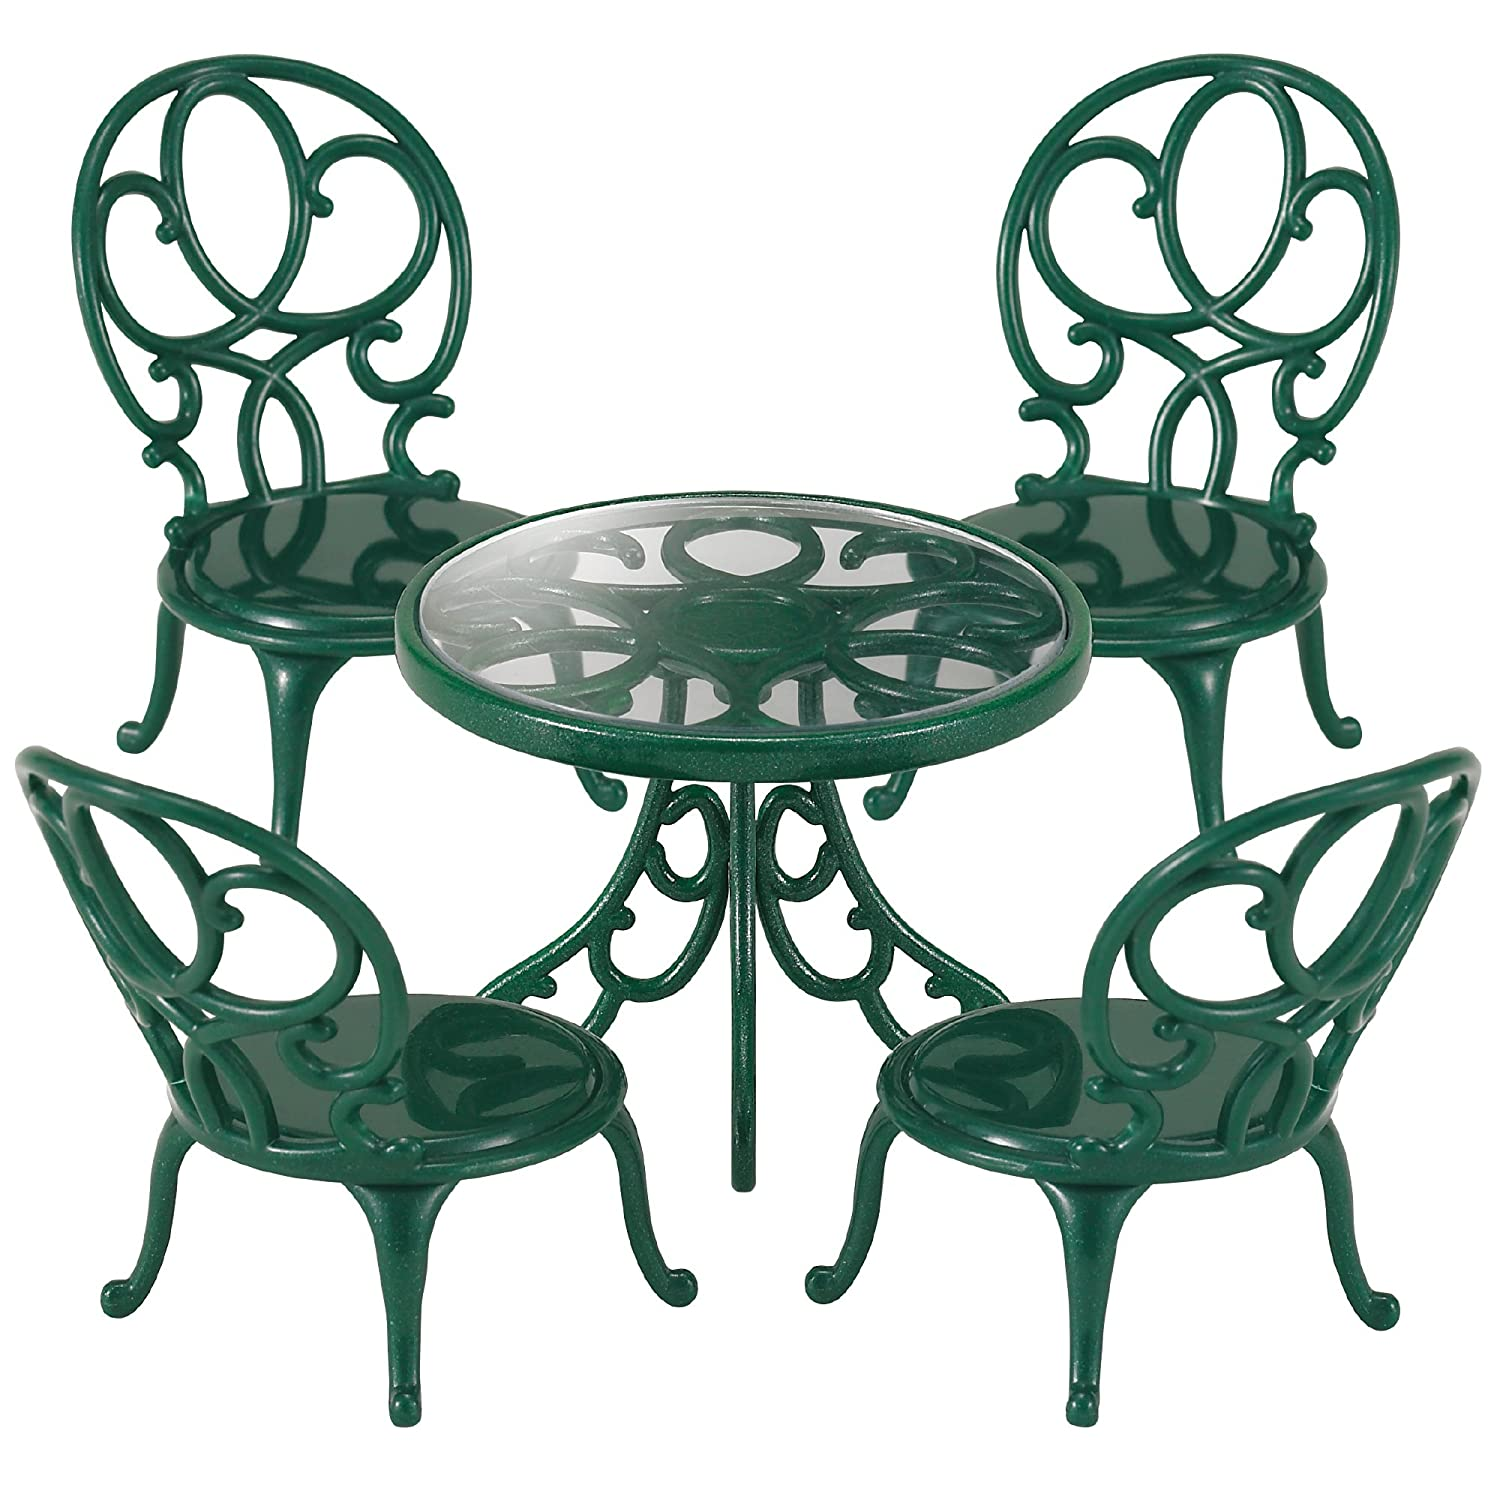 Garden Table And Chairs Part - 37: Sylvanian Families Ornate Garden Table And Chairs: Amazon.co.uk: Toys U0026  Games